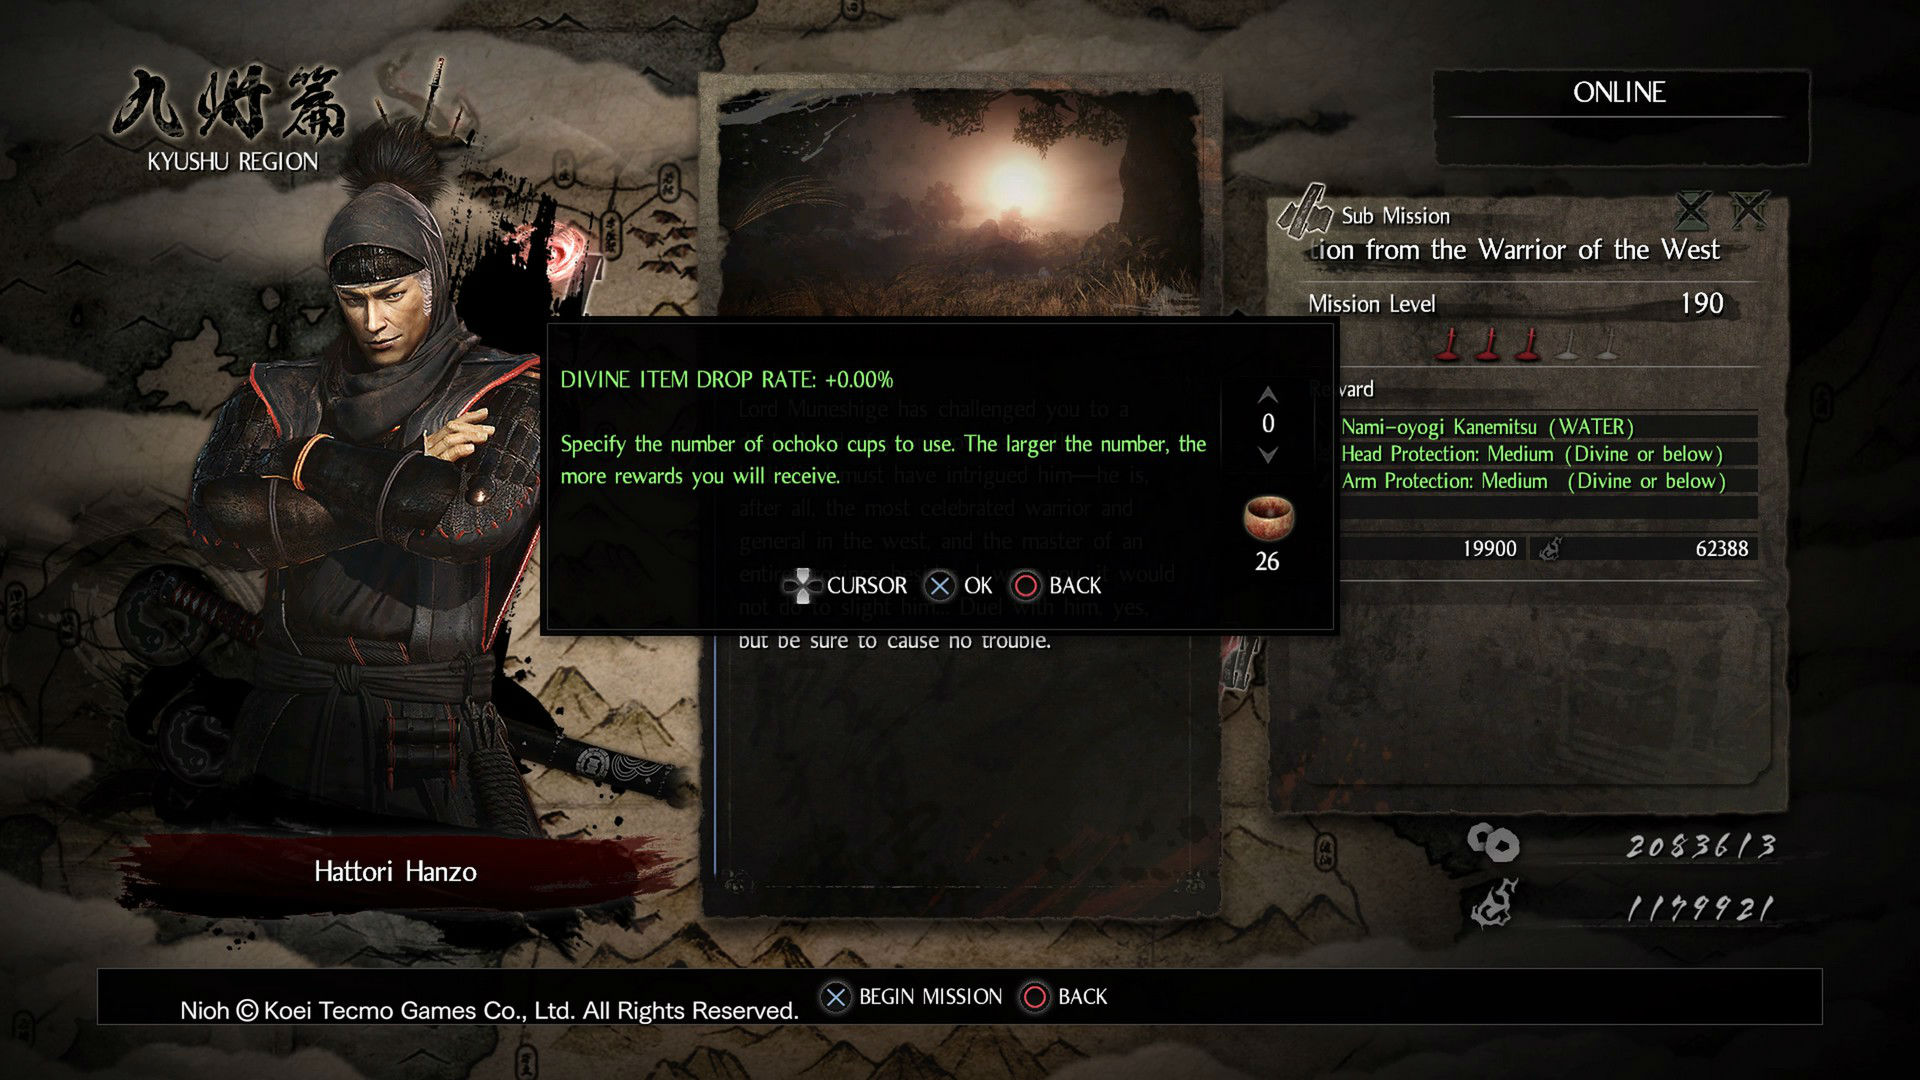 Here's how New Game+/postgame works in Nioh photo